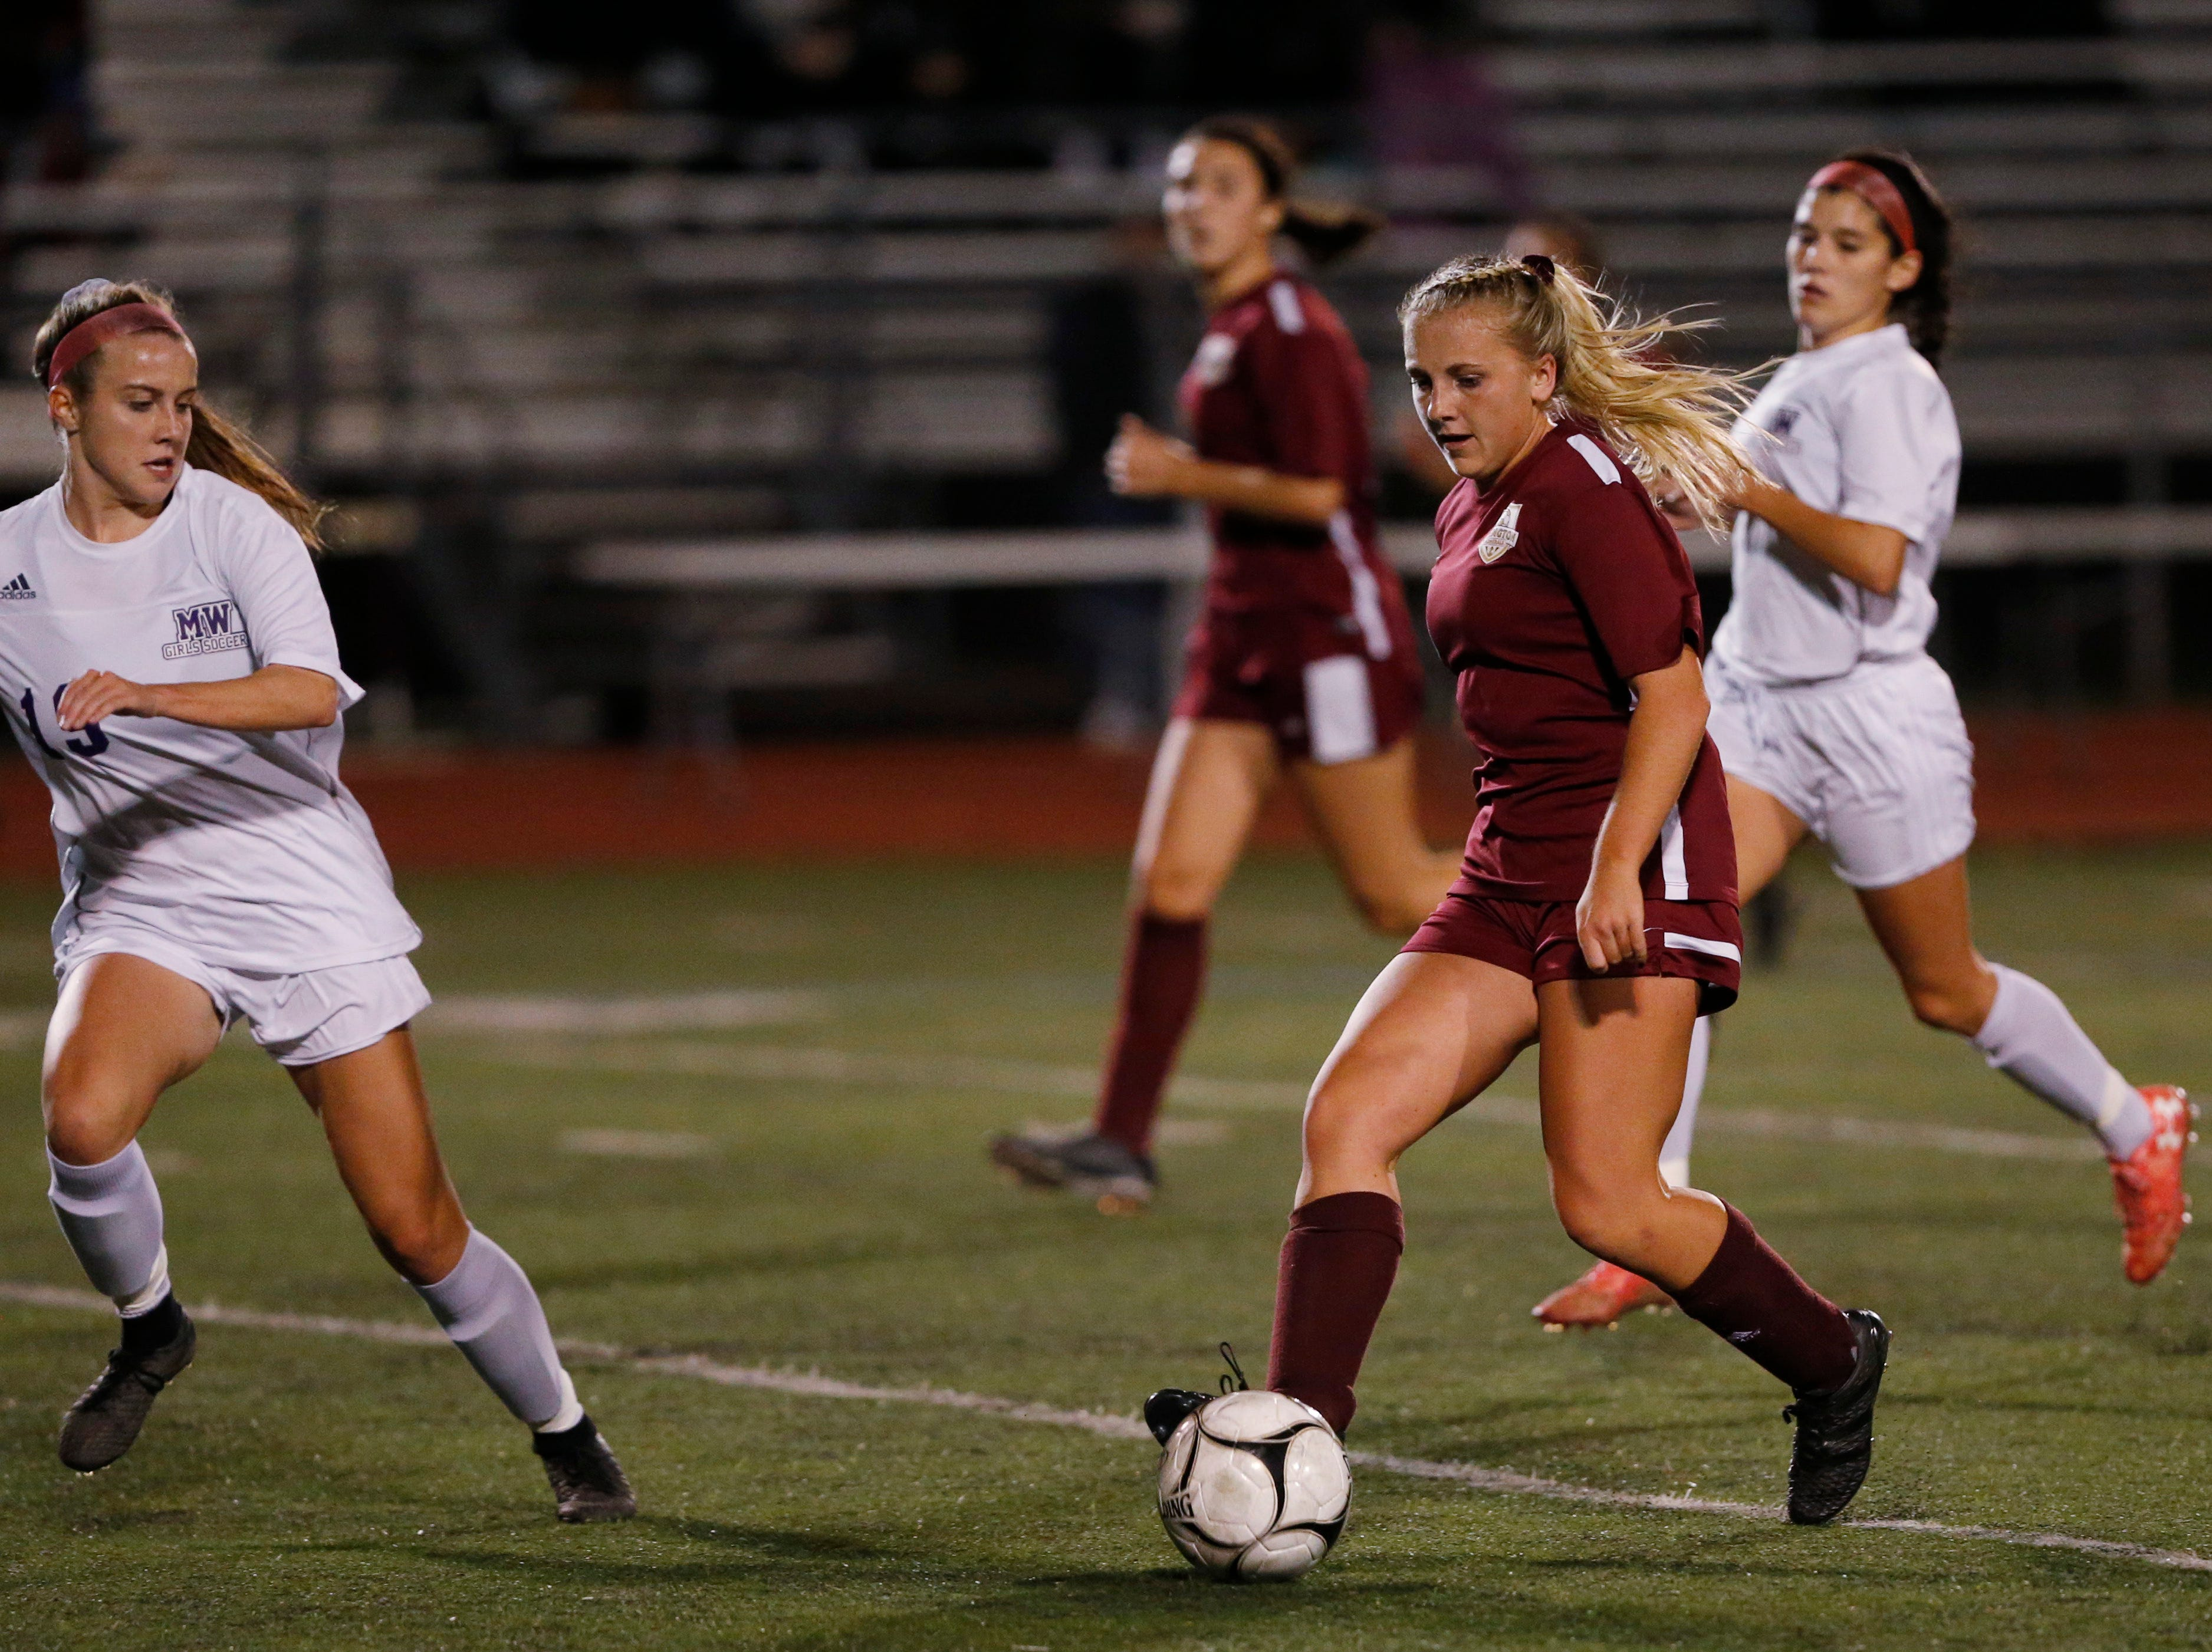 Arlington's Molly Feighan moves the ball up field against Monroe-Woodbury during the Class AA regional semifinal.